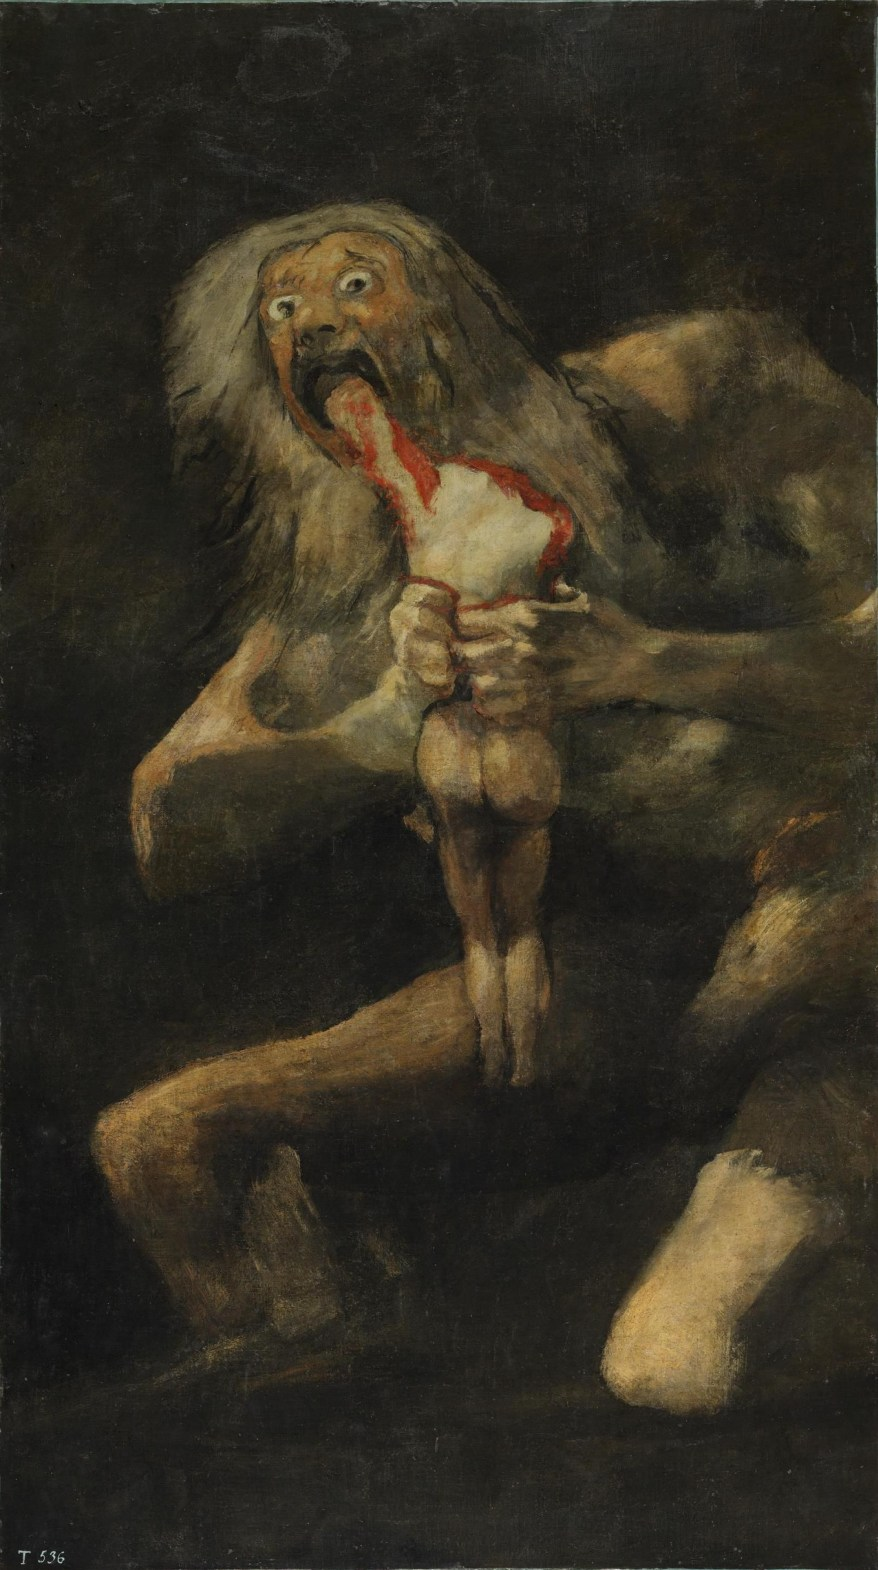 Francisco Goya, Saturn Devouring One of His Sons